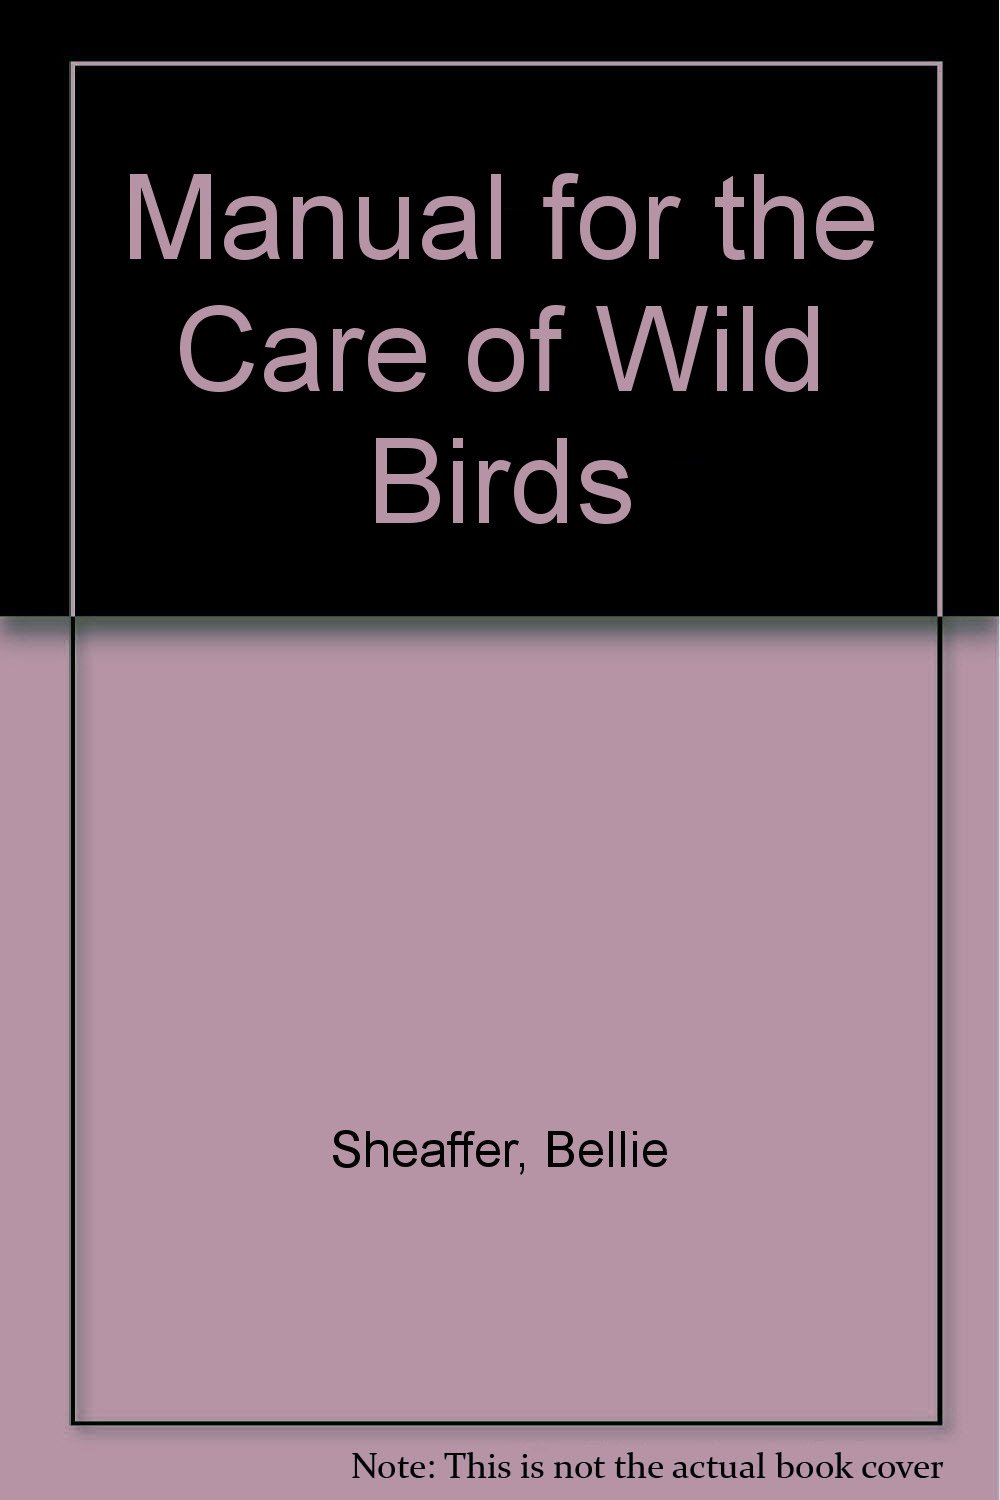 Amazon.in: Buy Manual for the Care of Wild Birds Book Online at Low Prices  in India | Manual for the Care of Wild Birds Reviews & Ratings